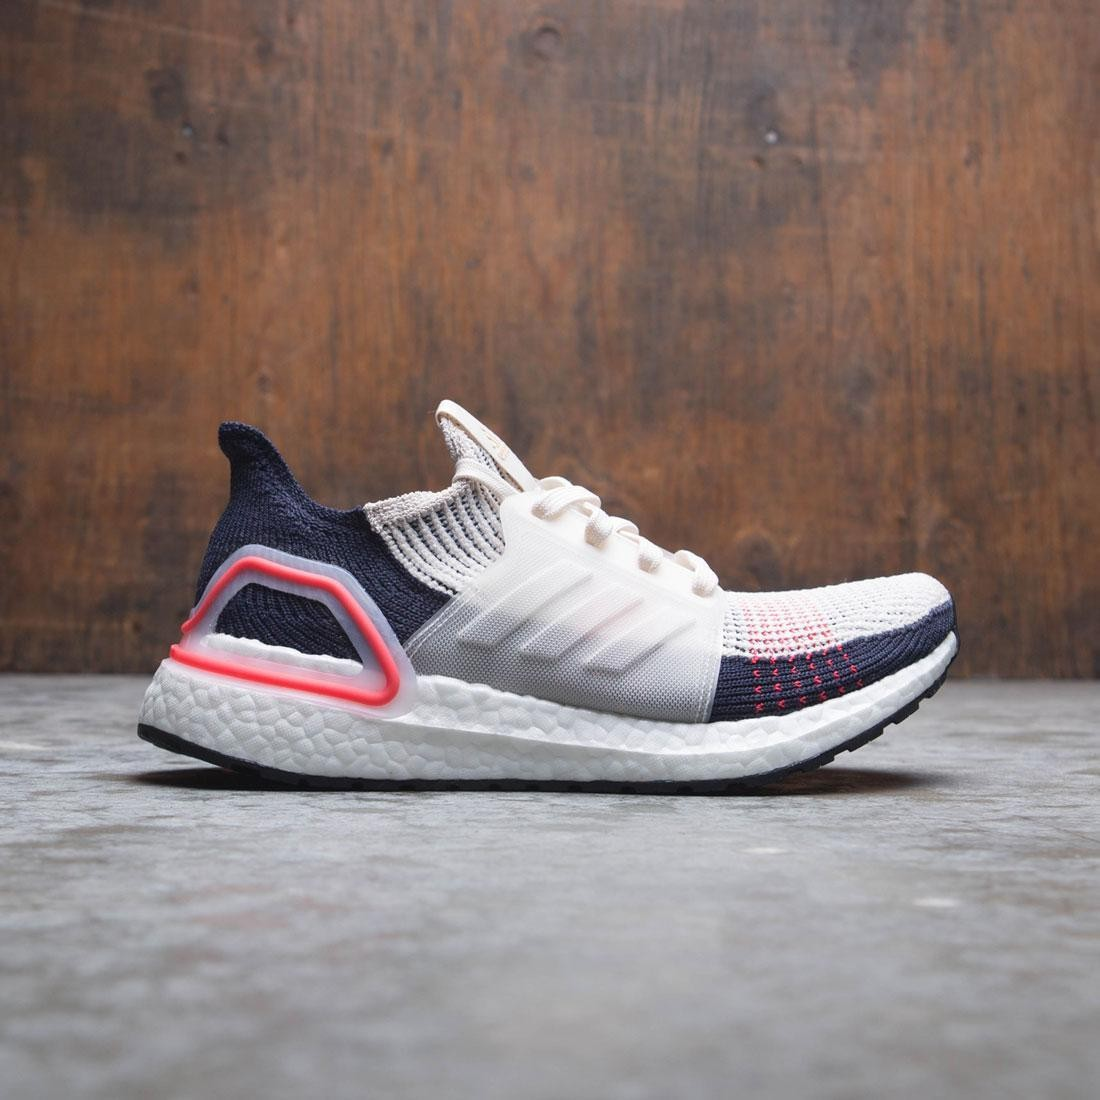 Adidas Women UltraBOOST 19 W (beige / clear brown / footwear white / legend ink)